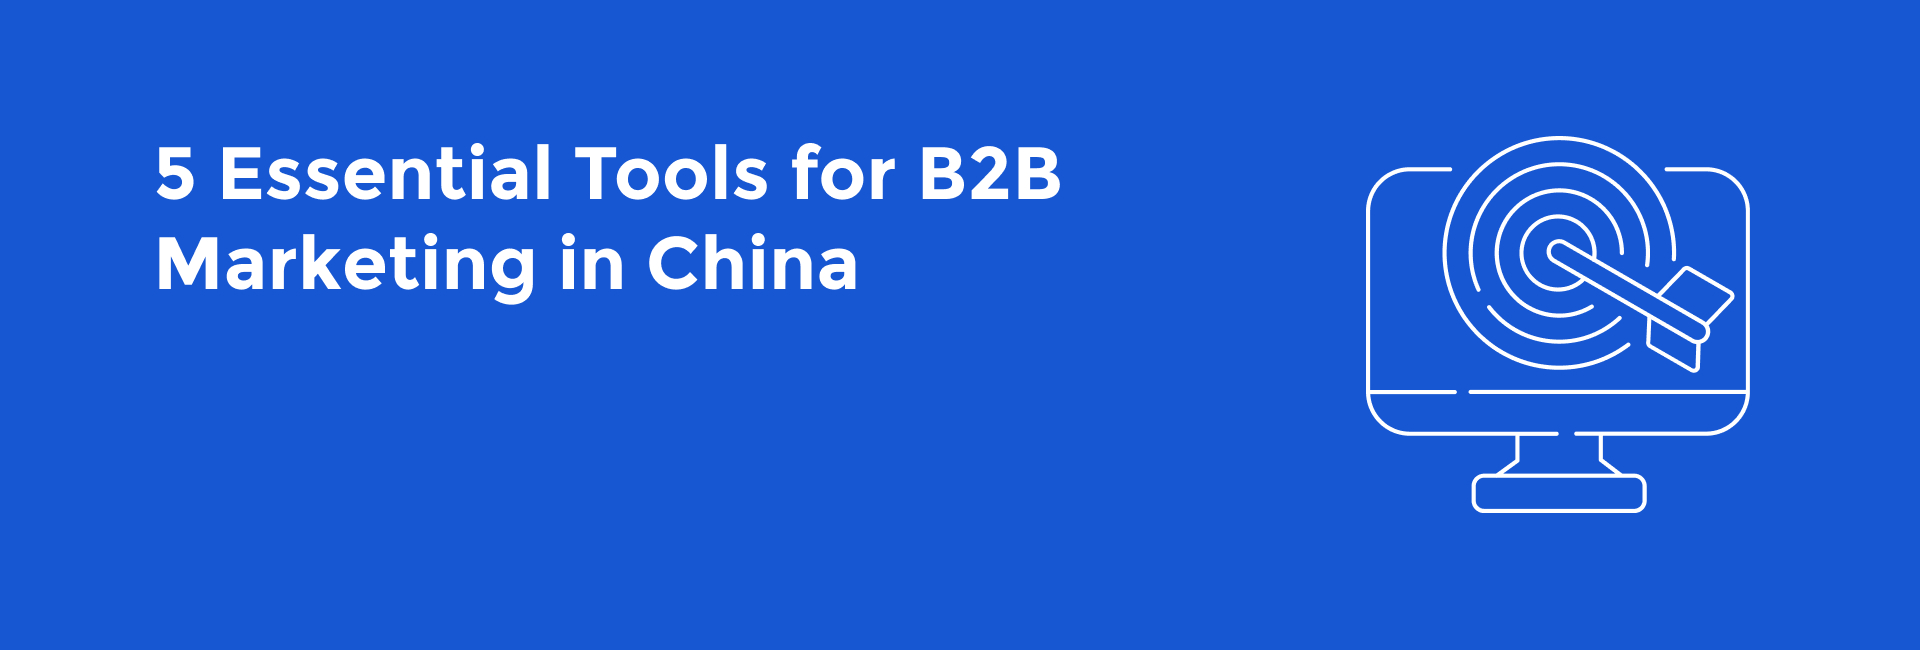 5 Essential Tools for B2B Marketing in China